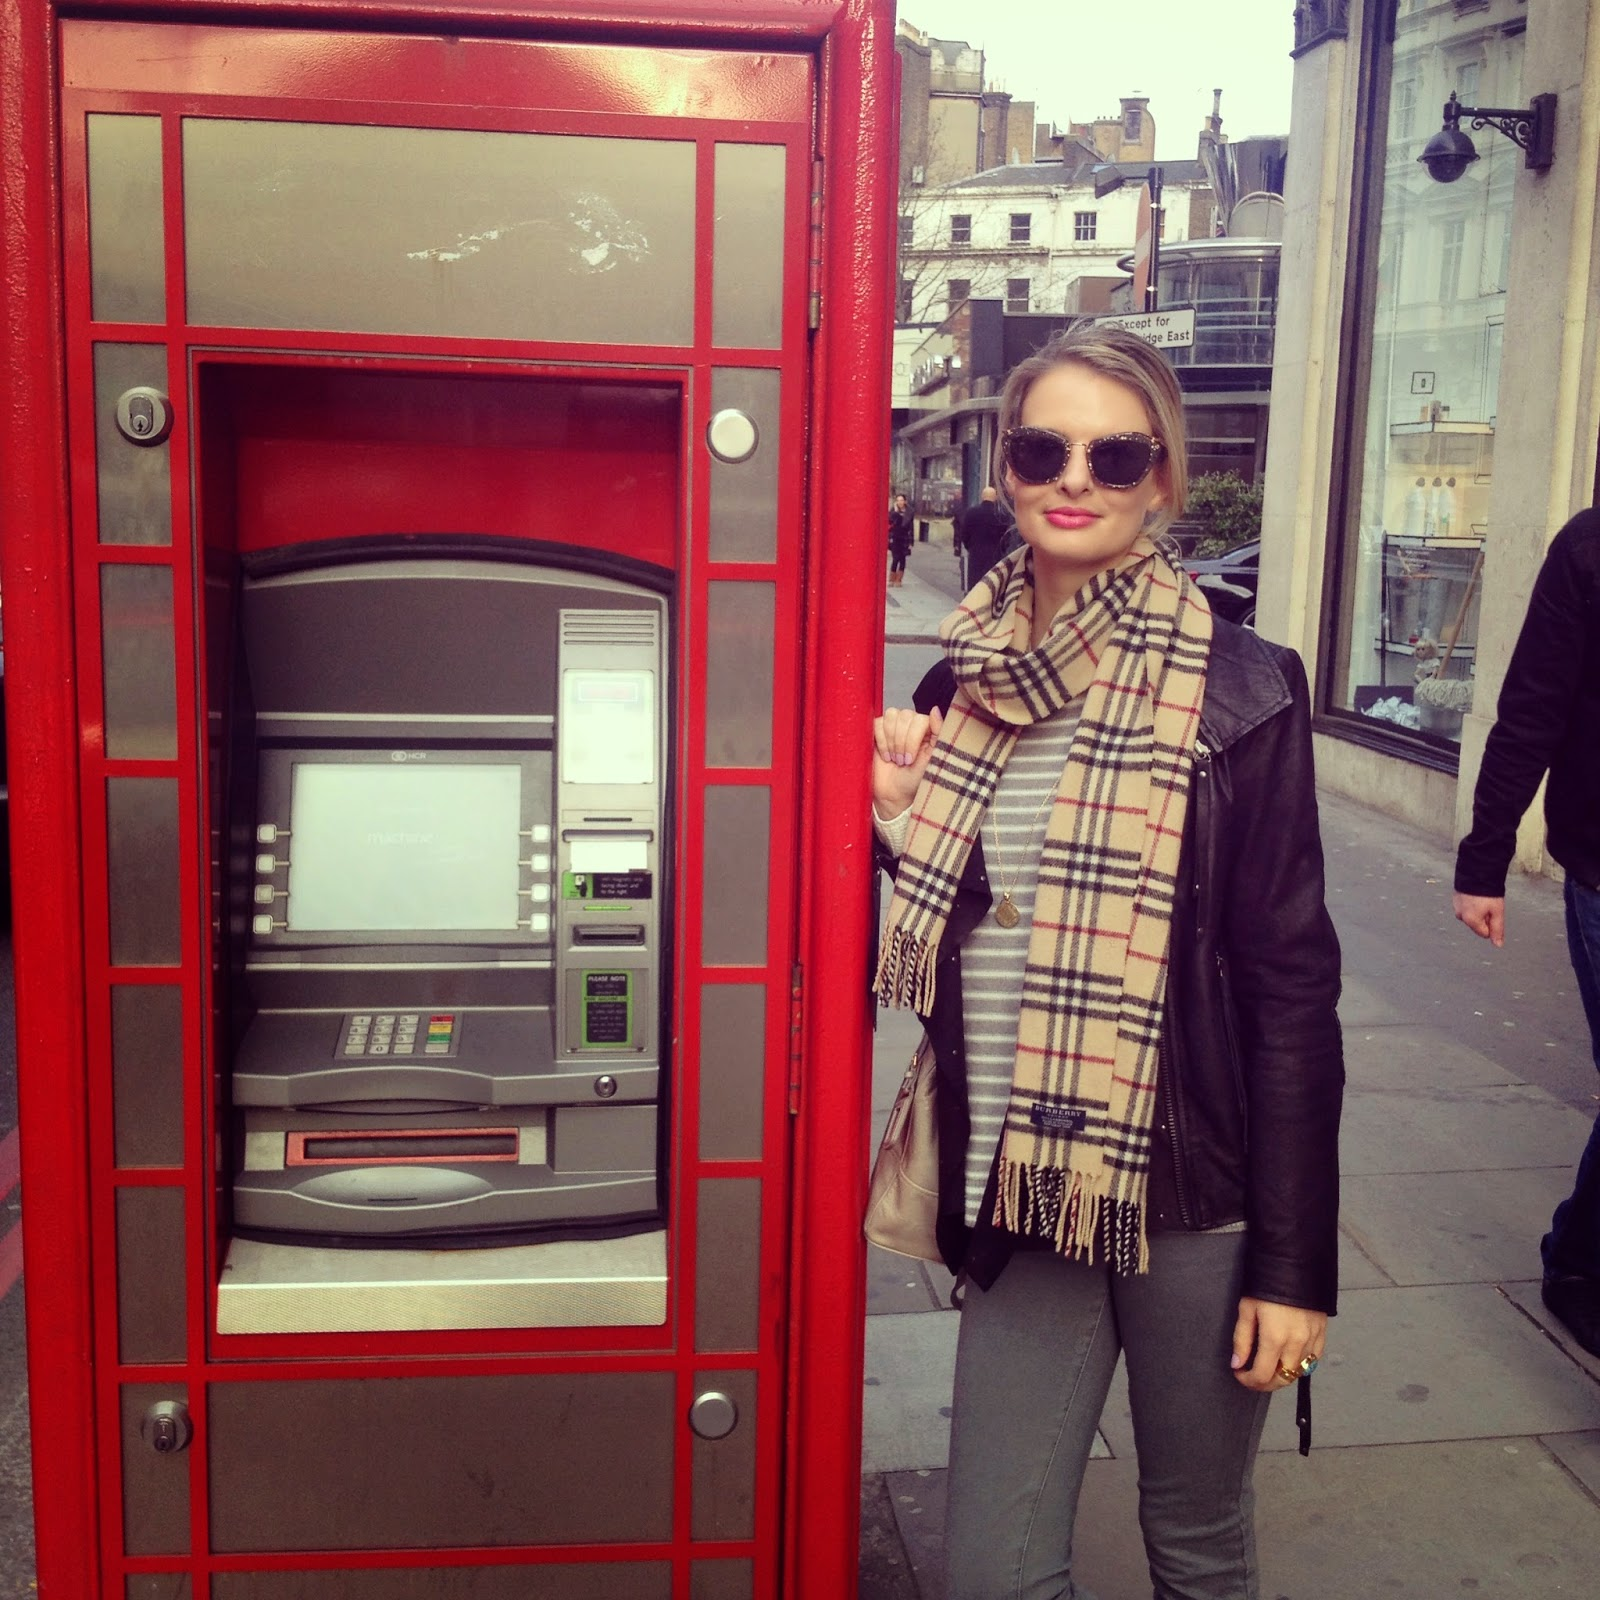 London, my week on instagram, fashion blogger, german fashion blogger, blogger in London, burberry scarf, leather jacket, blank nyc jeans, phone booth, phone booth transformed into cash maschine, miu miu sunglasses